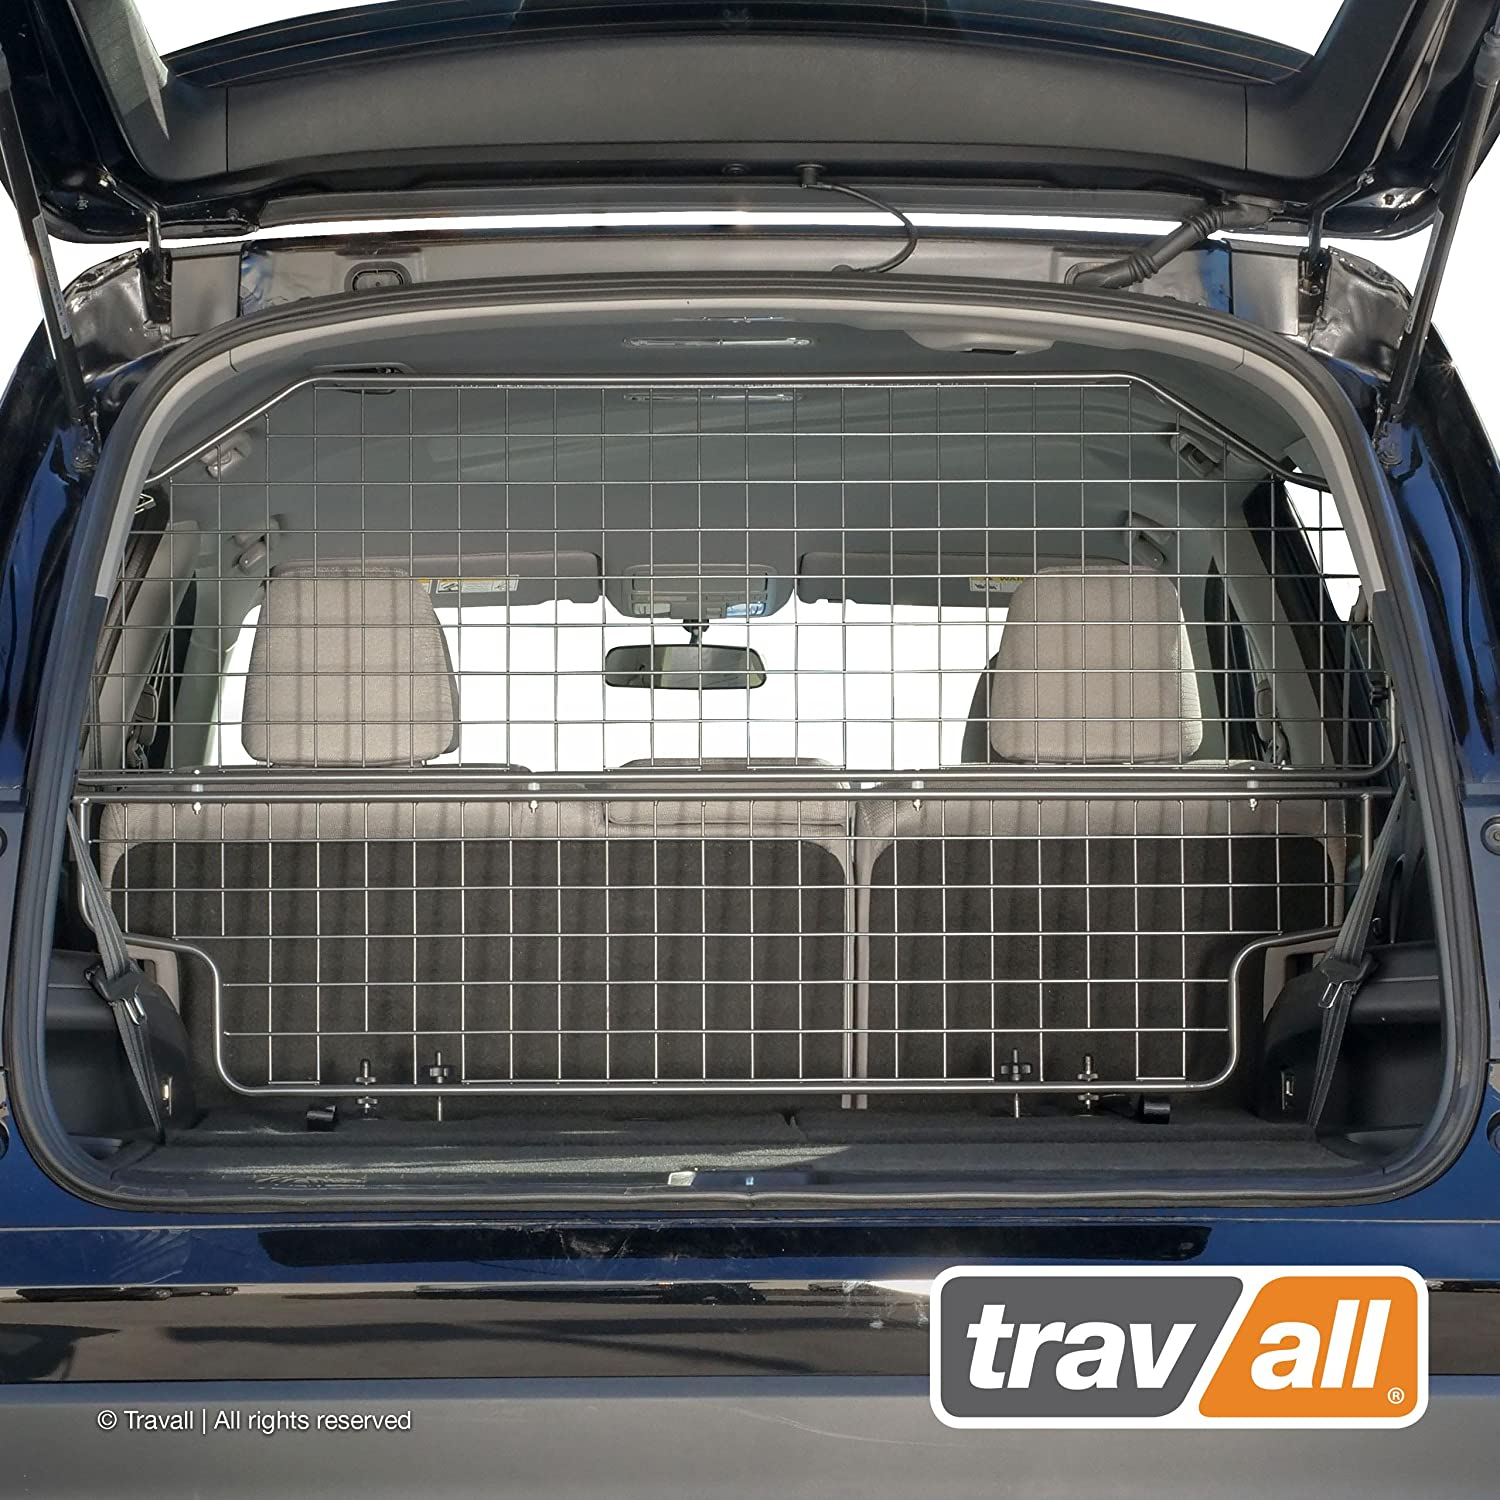 Travall Guard Compatible with Honda Pilot 2015-Current TDG1571 – Rattle-Free Steel Pet Barrier